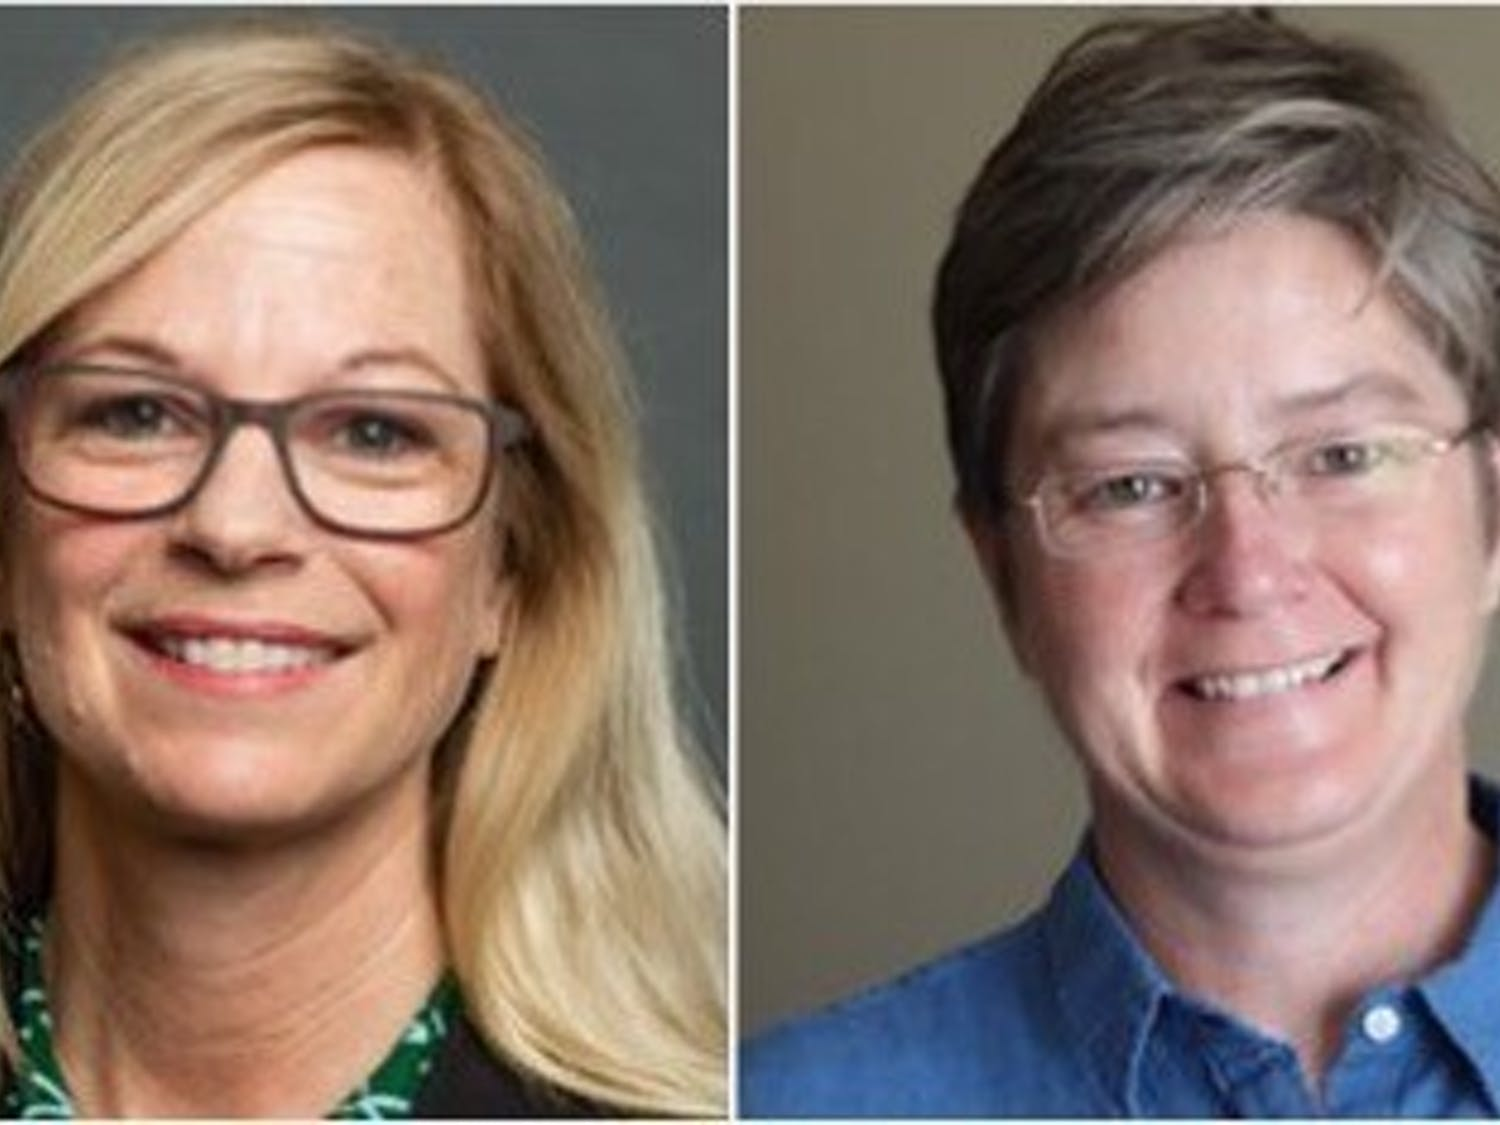 Lisa Parks (left), and Rebecca Sandefur (right) each received a $625,000 grant to further their research goals.